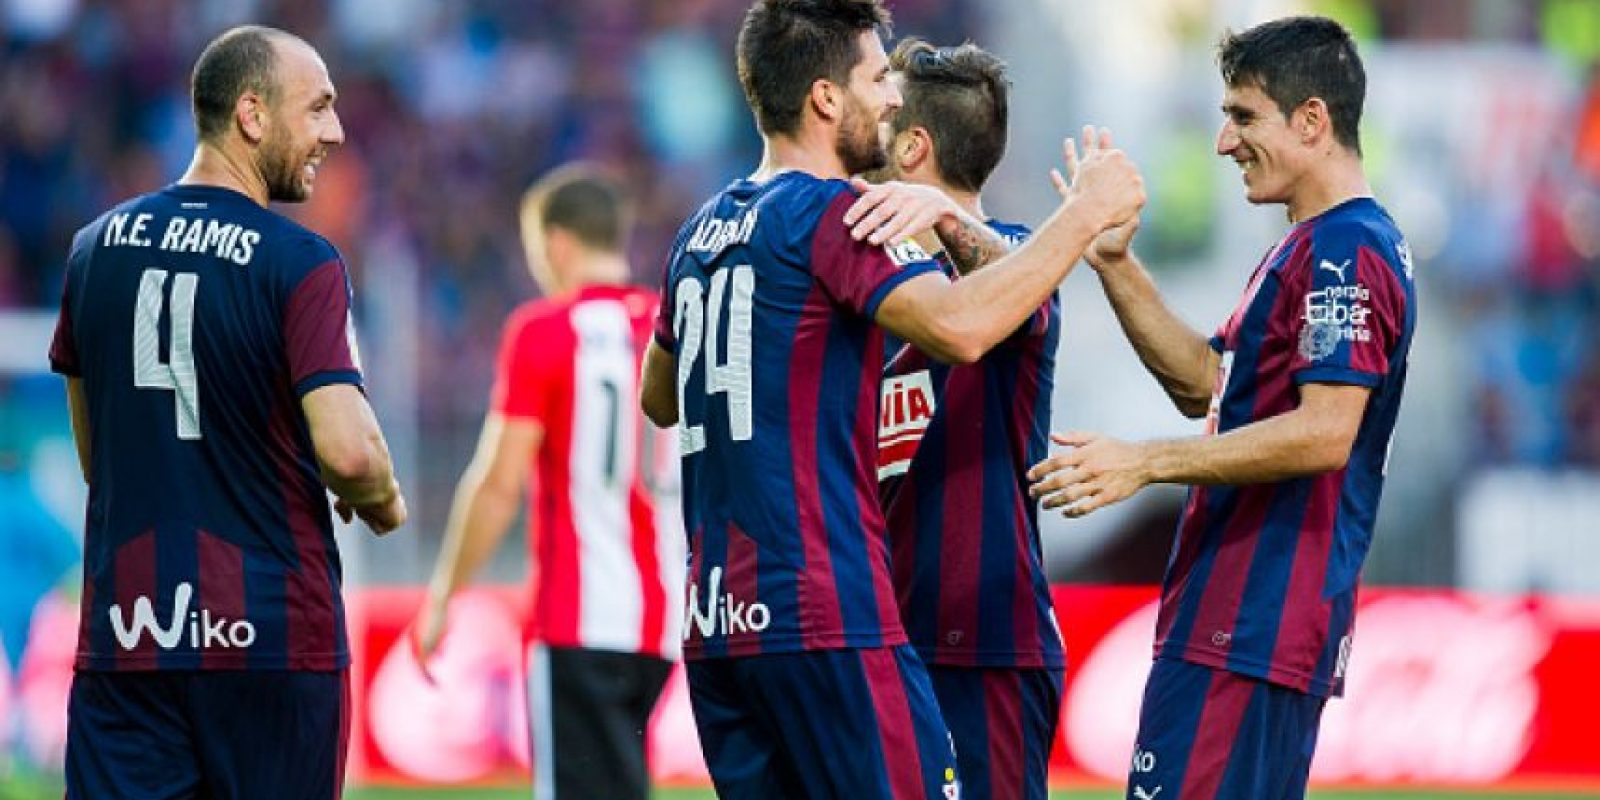 5. SD Eibar Foto: Getty Images